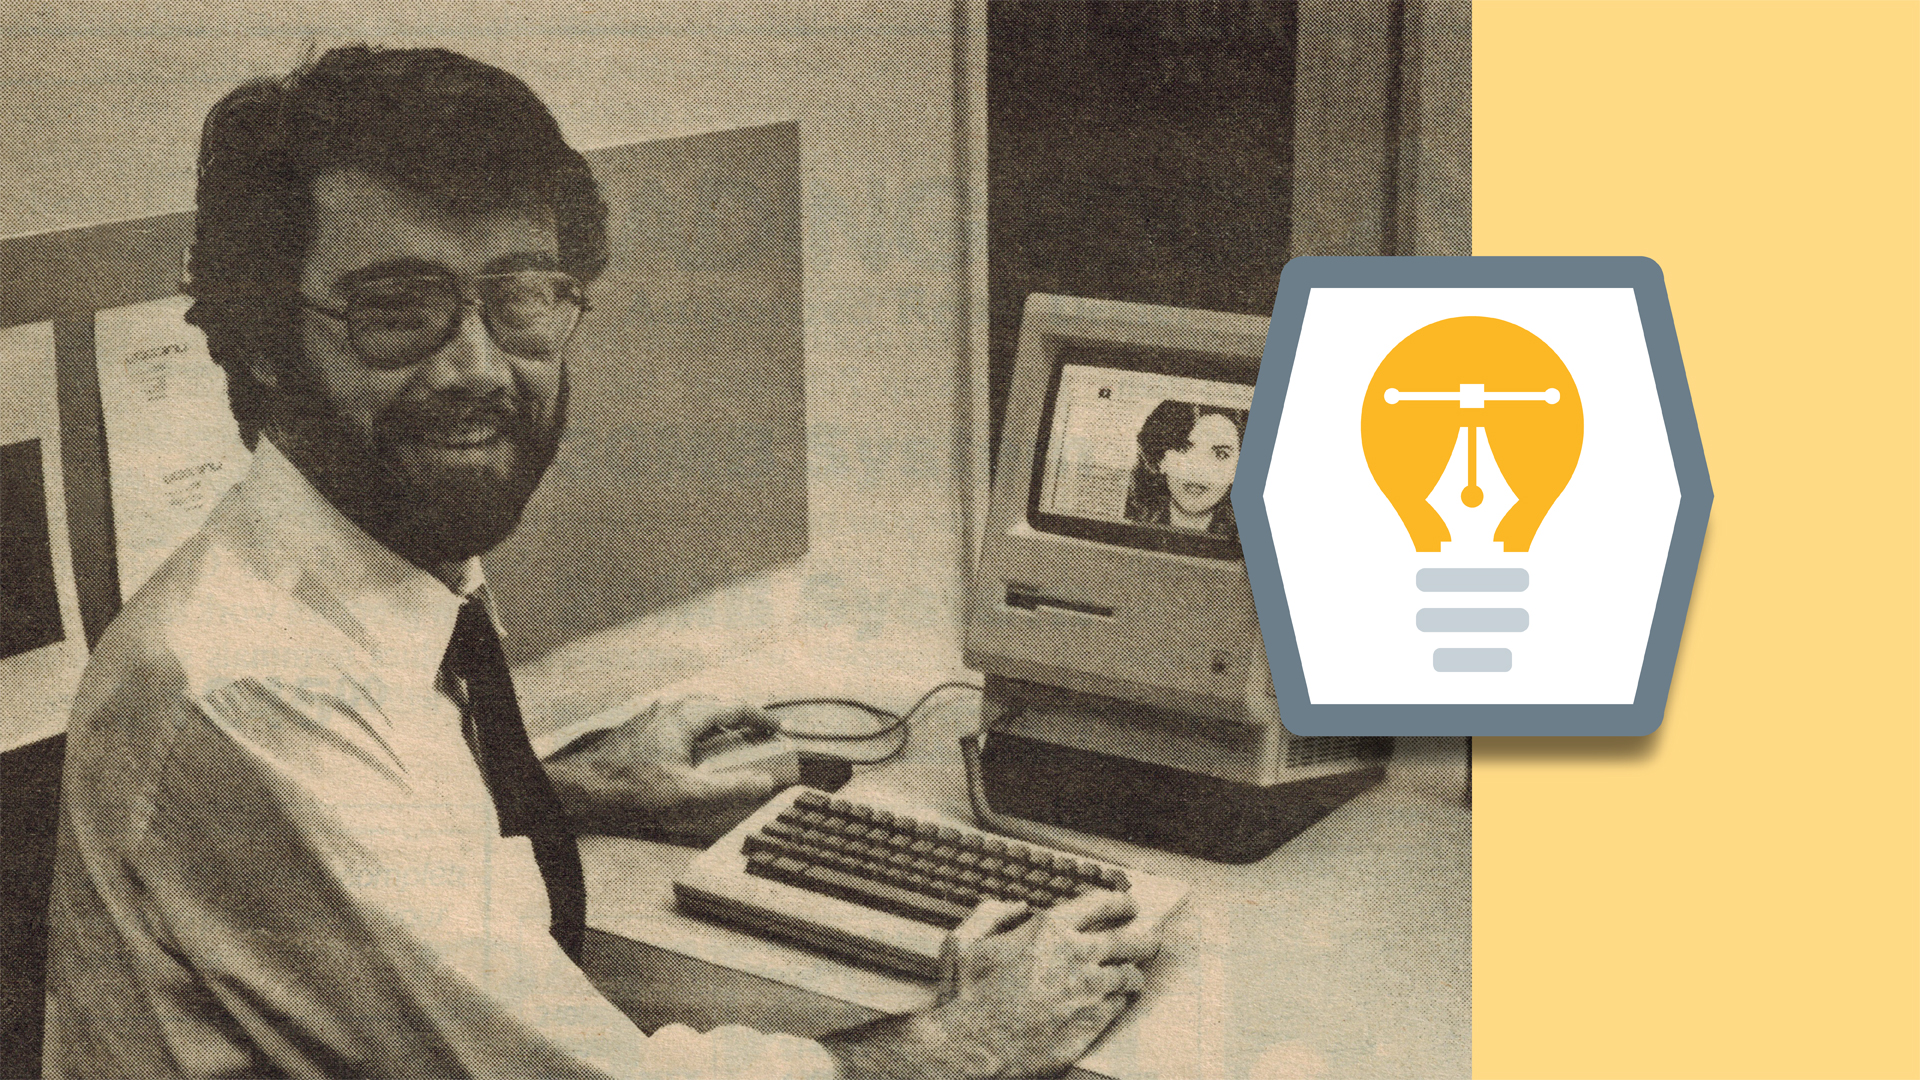 How did you become the first desktop publisher?: Graphic Design: Insight and Advice